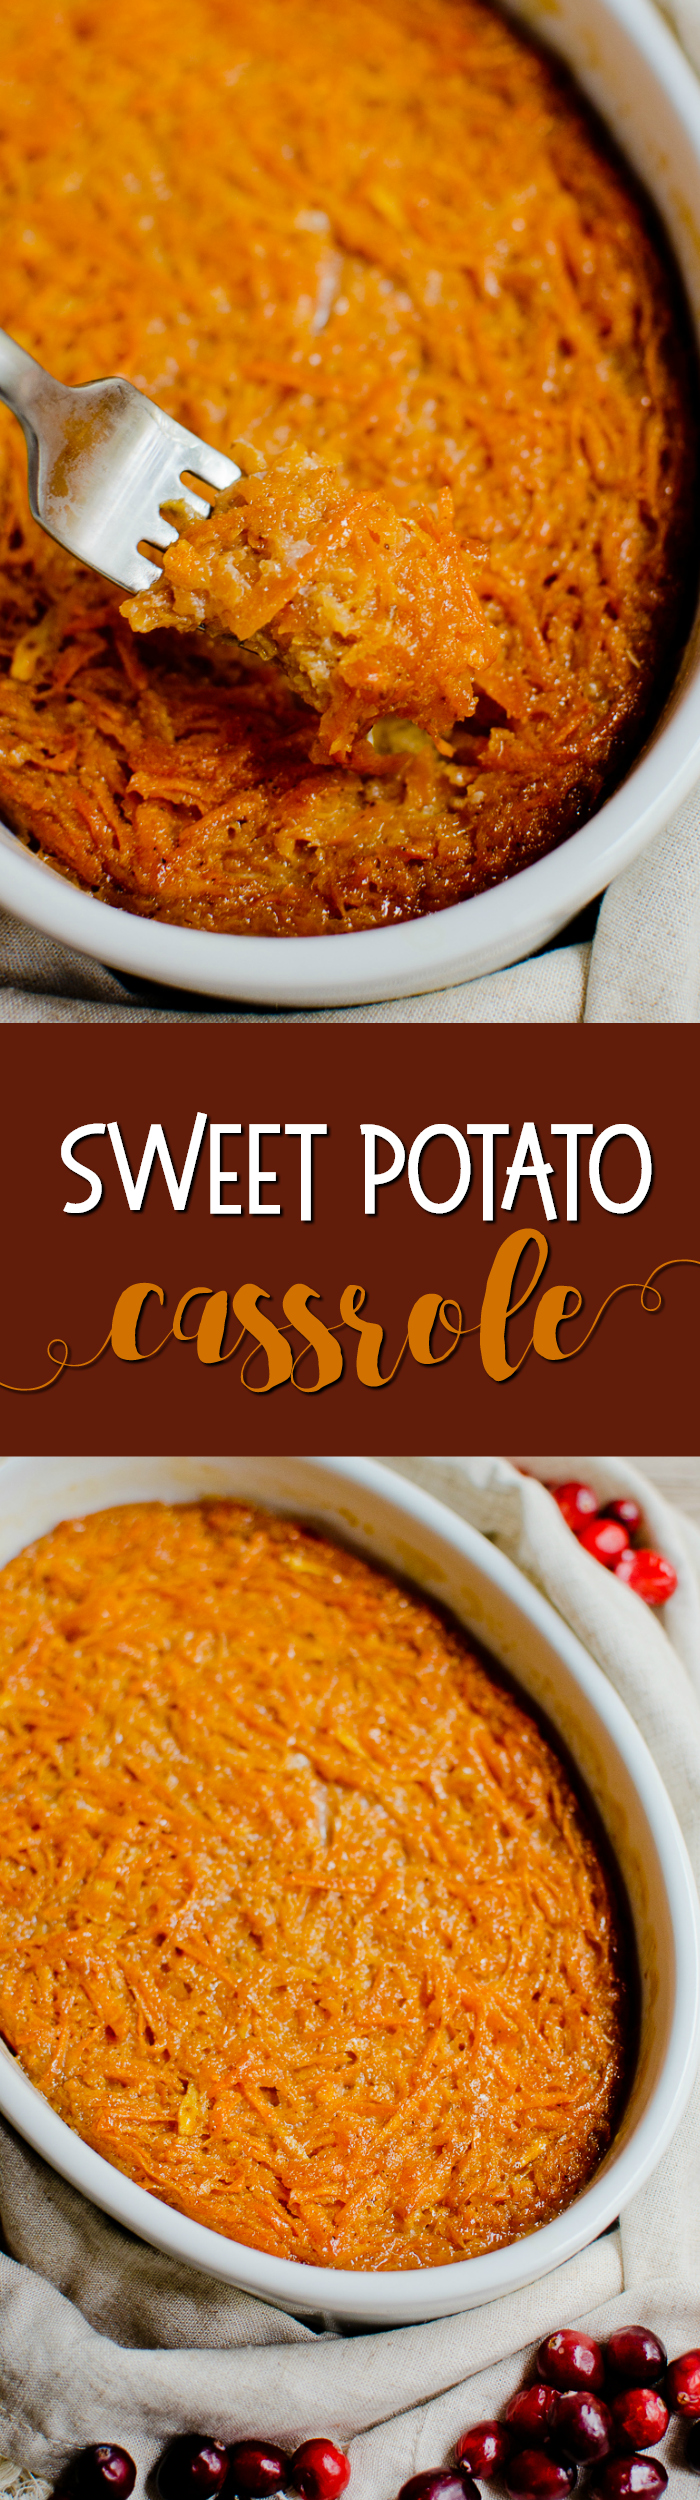 This easysweet potato casseroleis made with gratedsweet potatoes and baked to perfection!